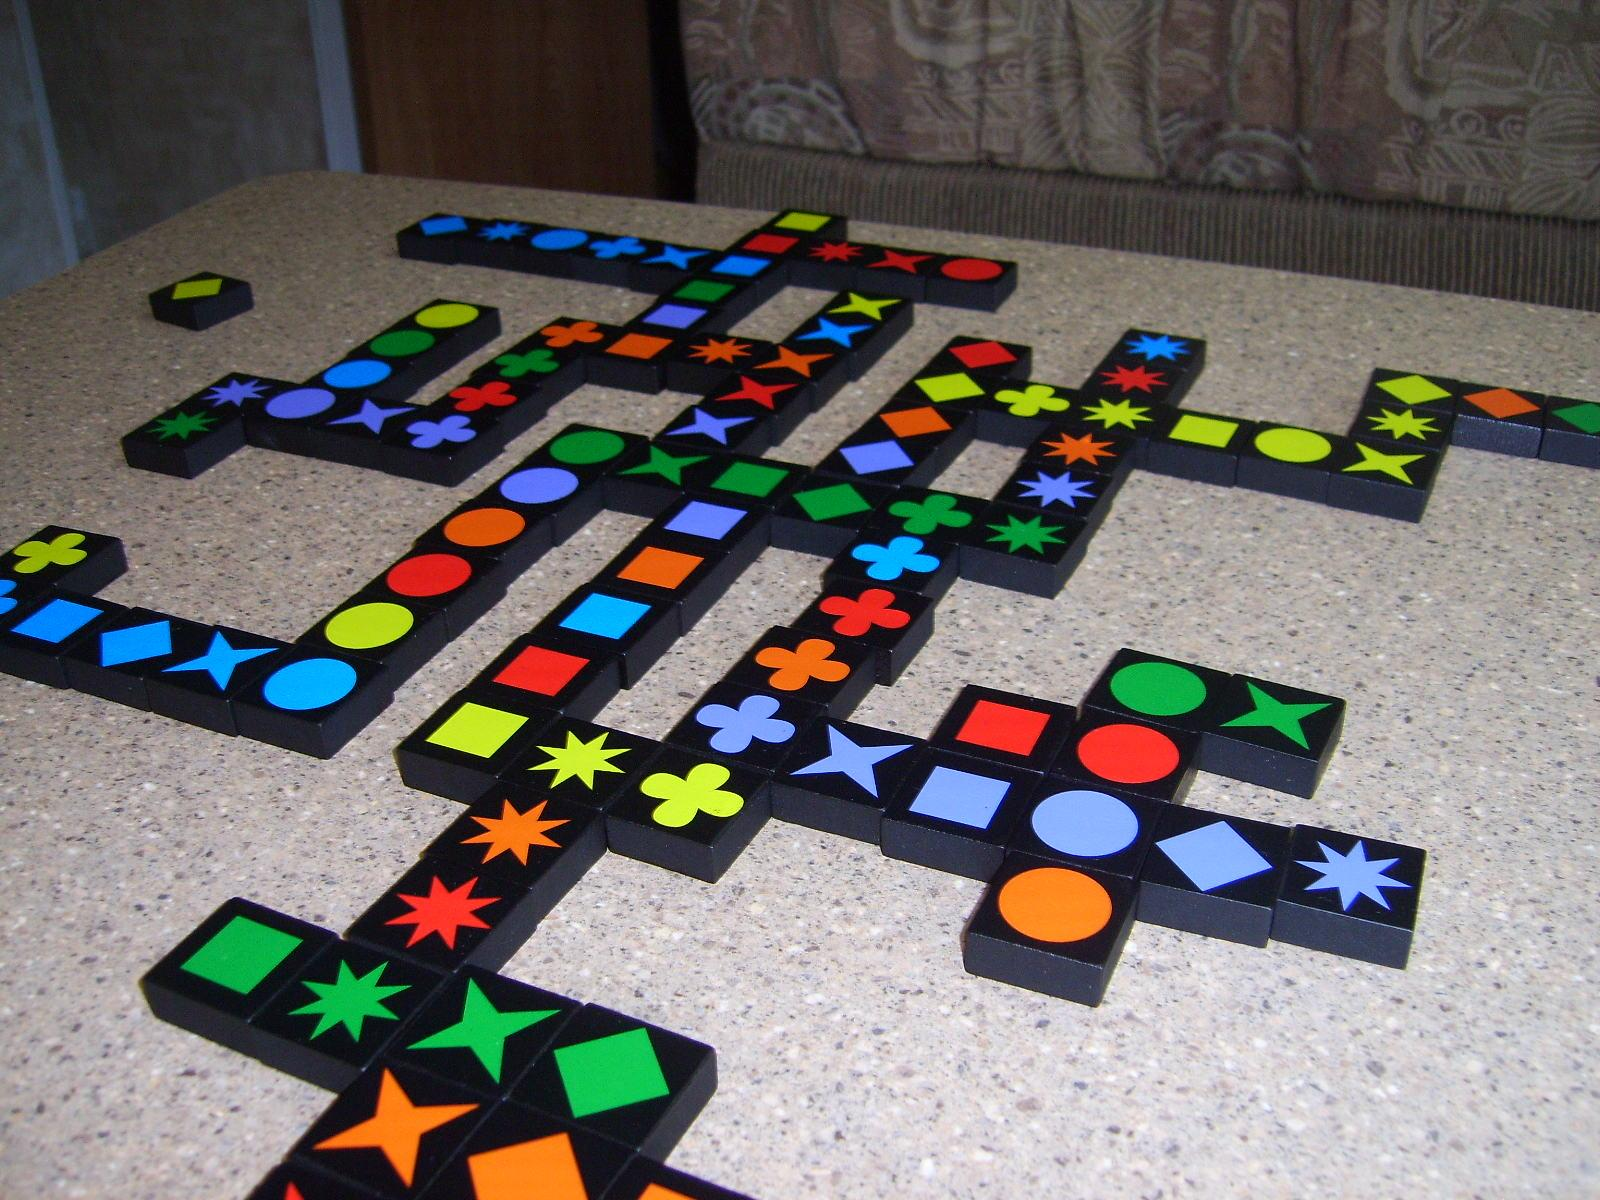 Top 15 Family Games You Can Play and Spend Great Time With Your Loved Ones